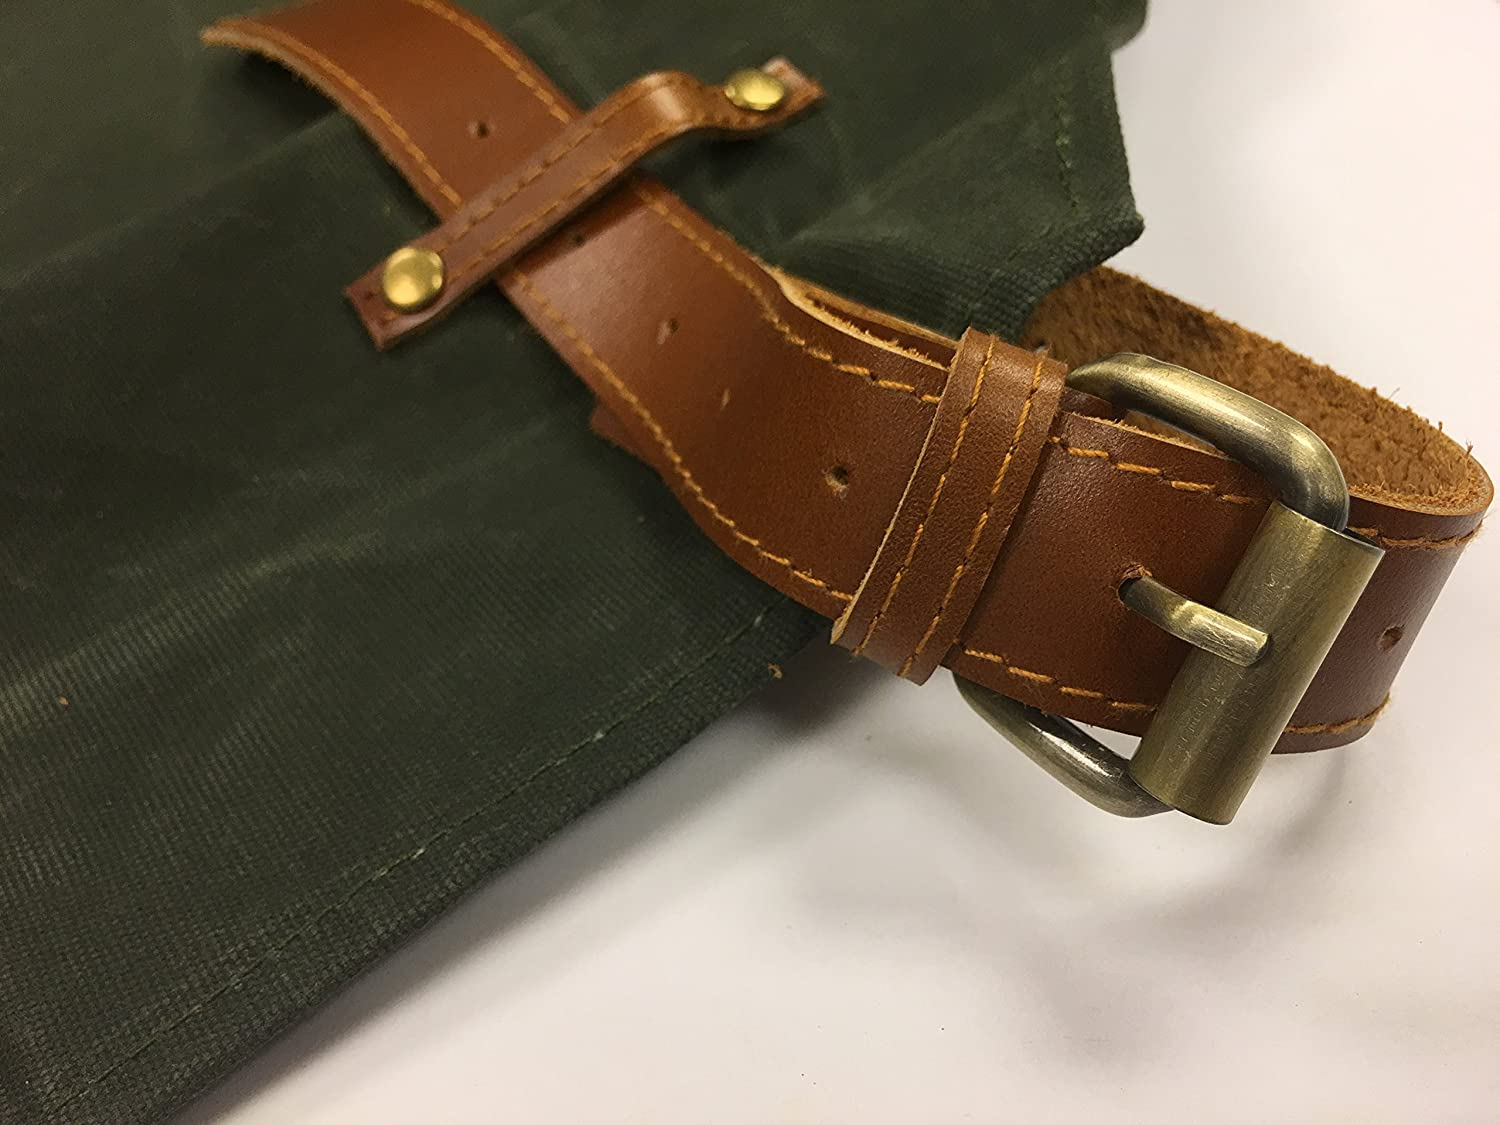 Mud Brown Water Resistant Artisan Aprons by Gouache Handmade Waxed Canvas Apron with Leather Straps